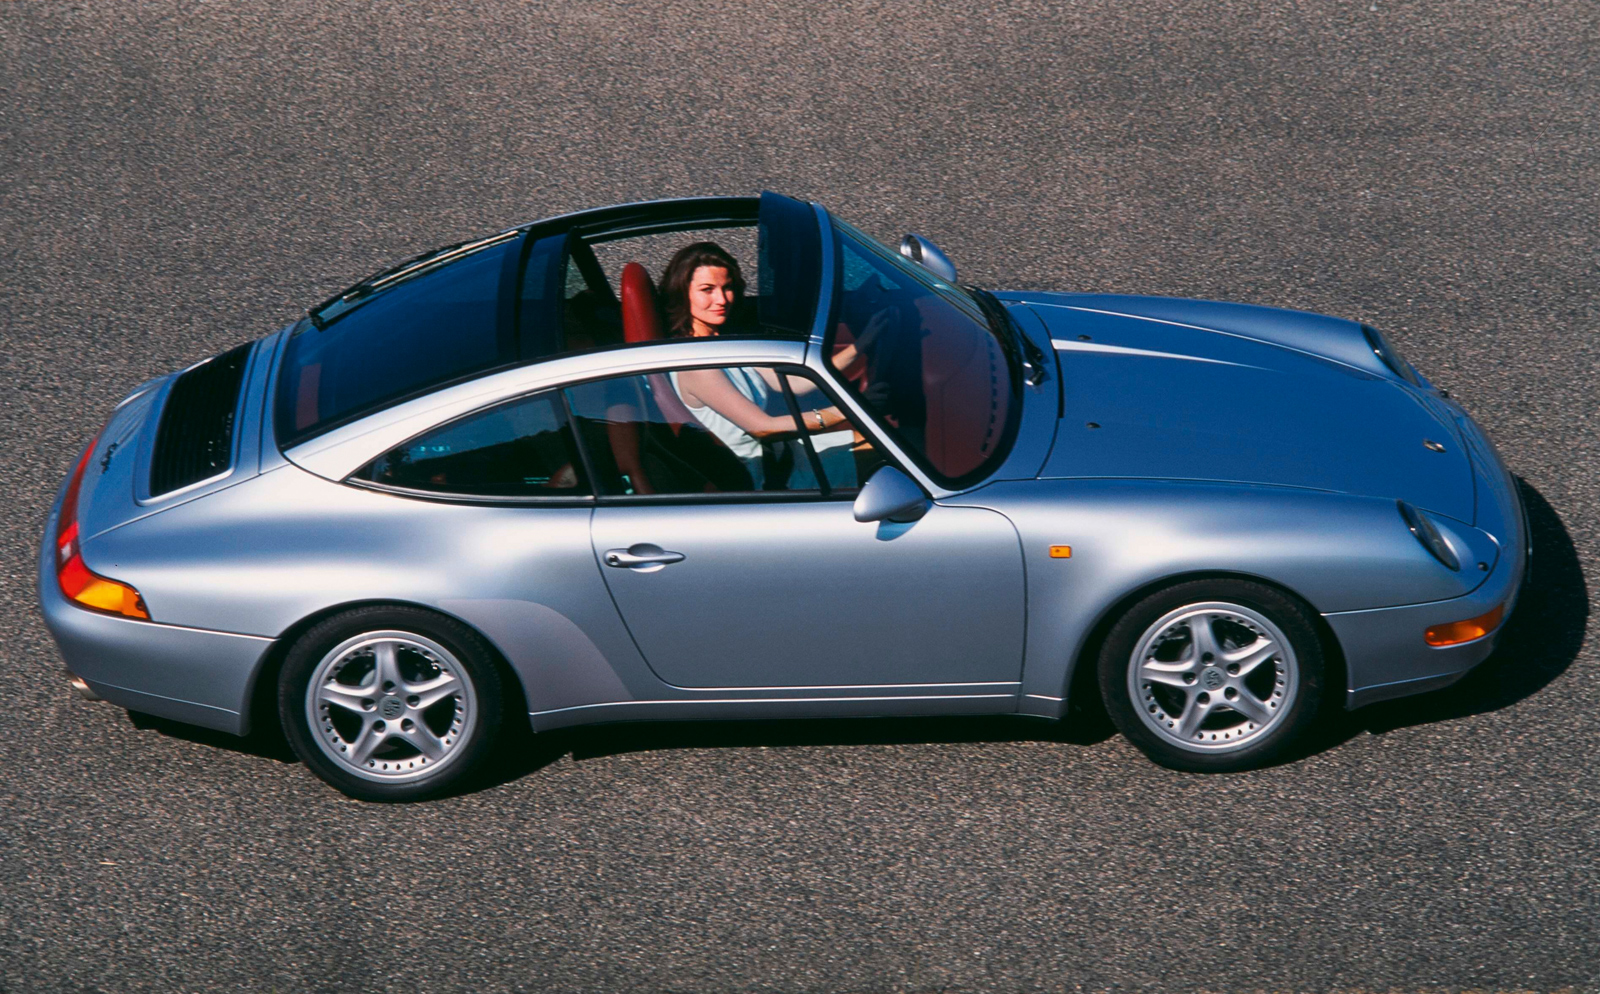 Vwvortex com why is the porsche 911 targa so unloved by collectors